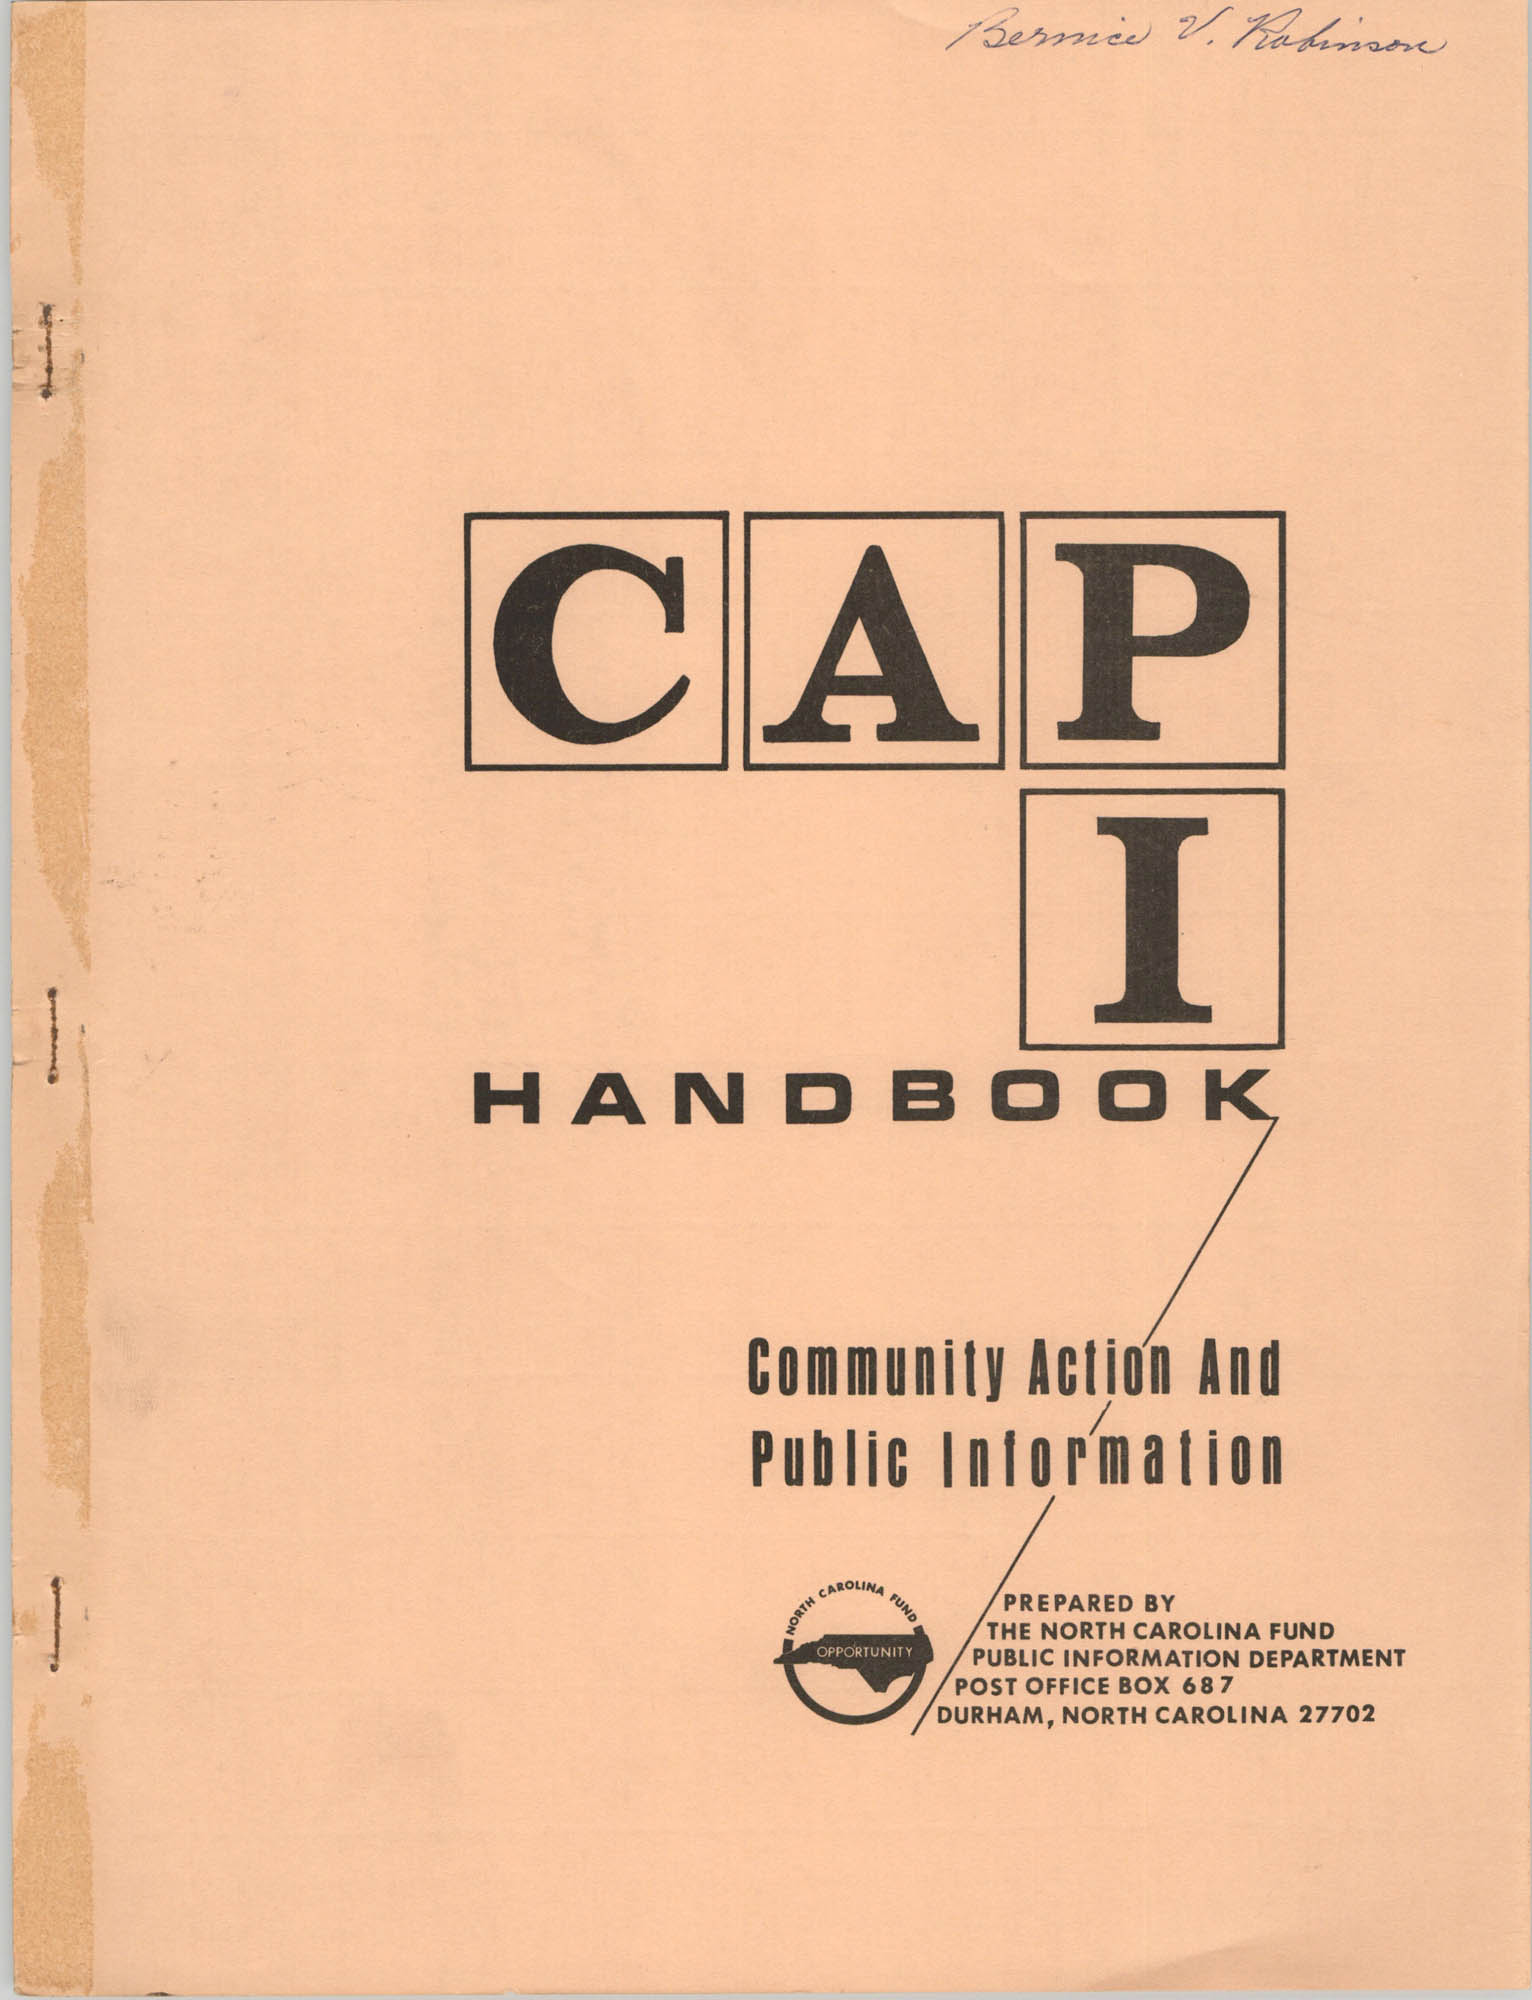 Community Action and Public Information Handbook